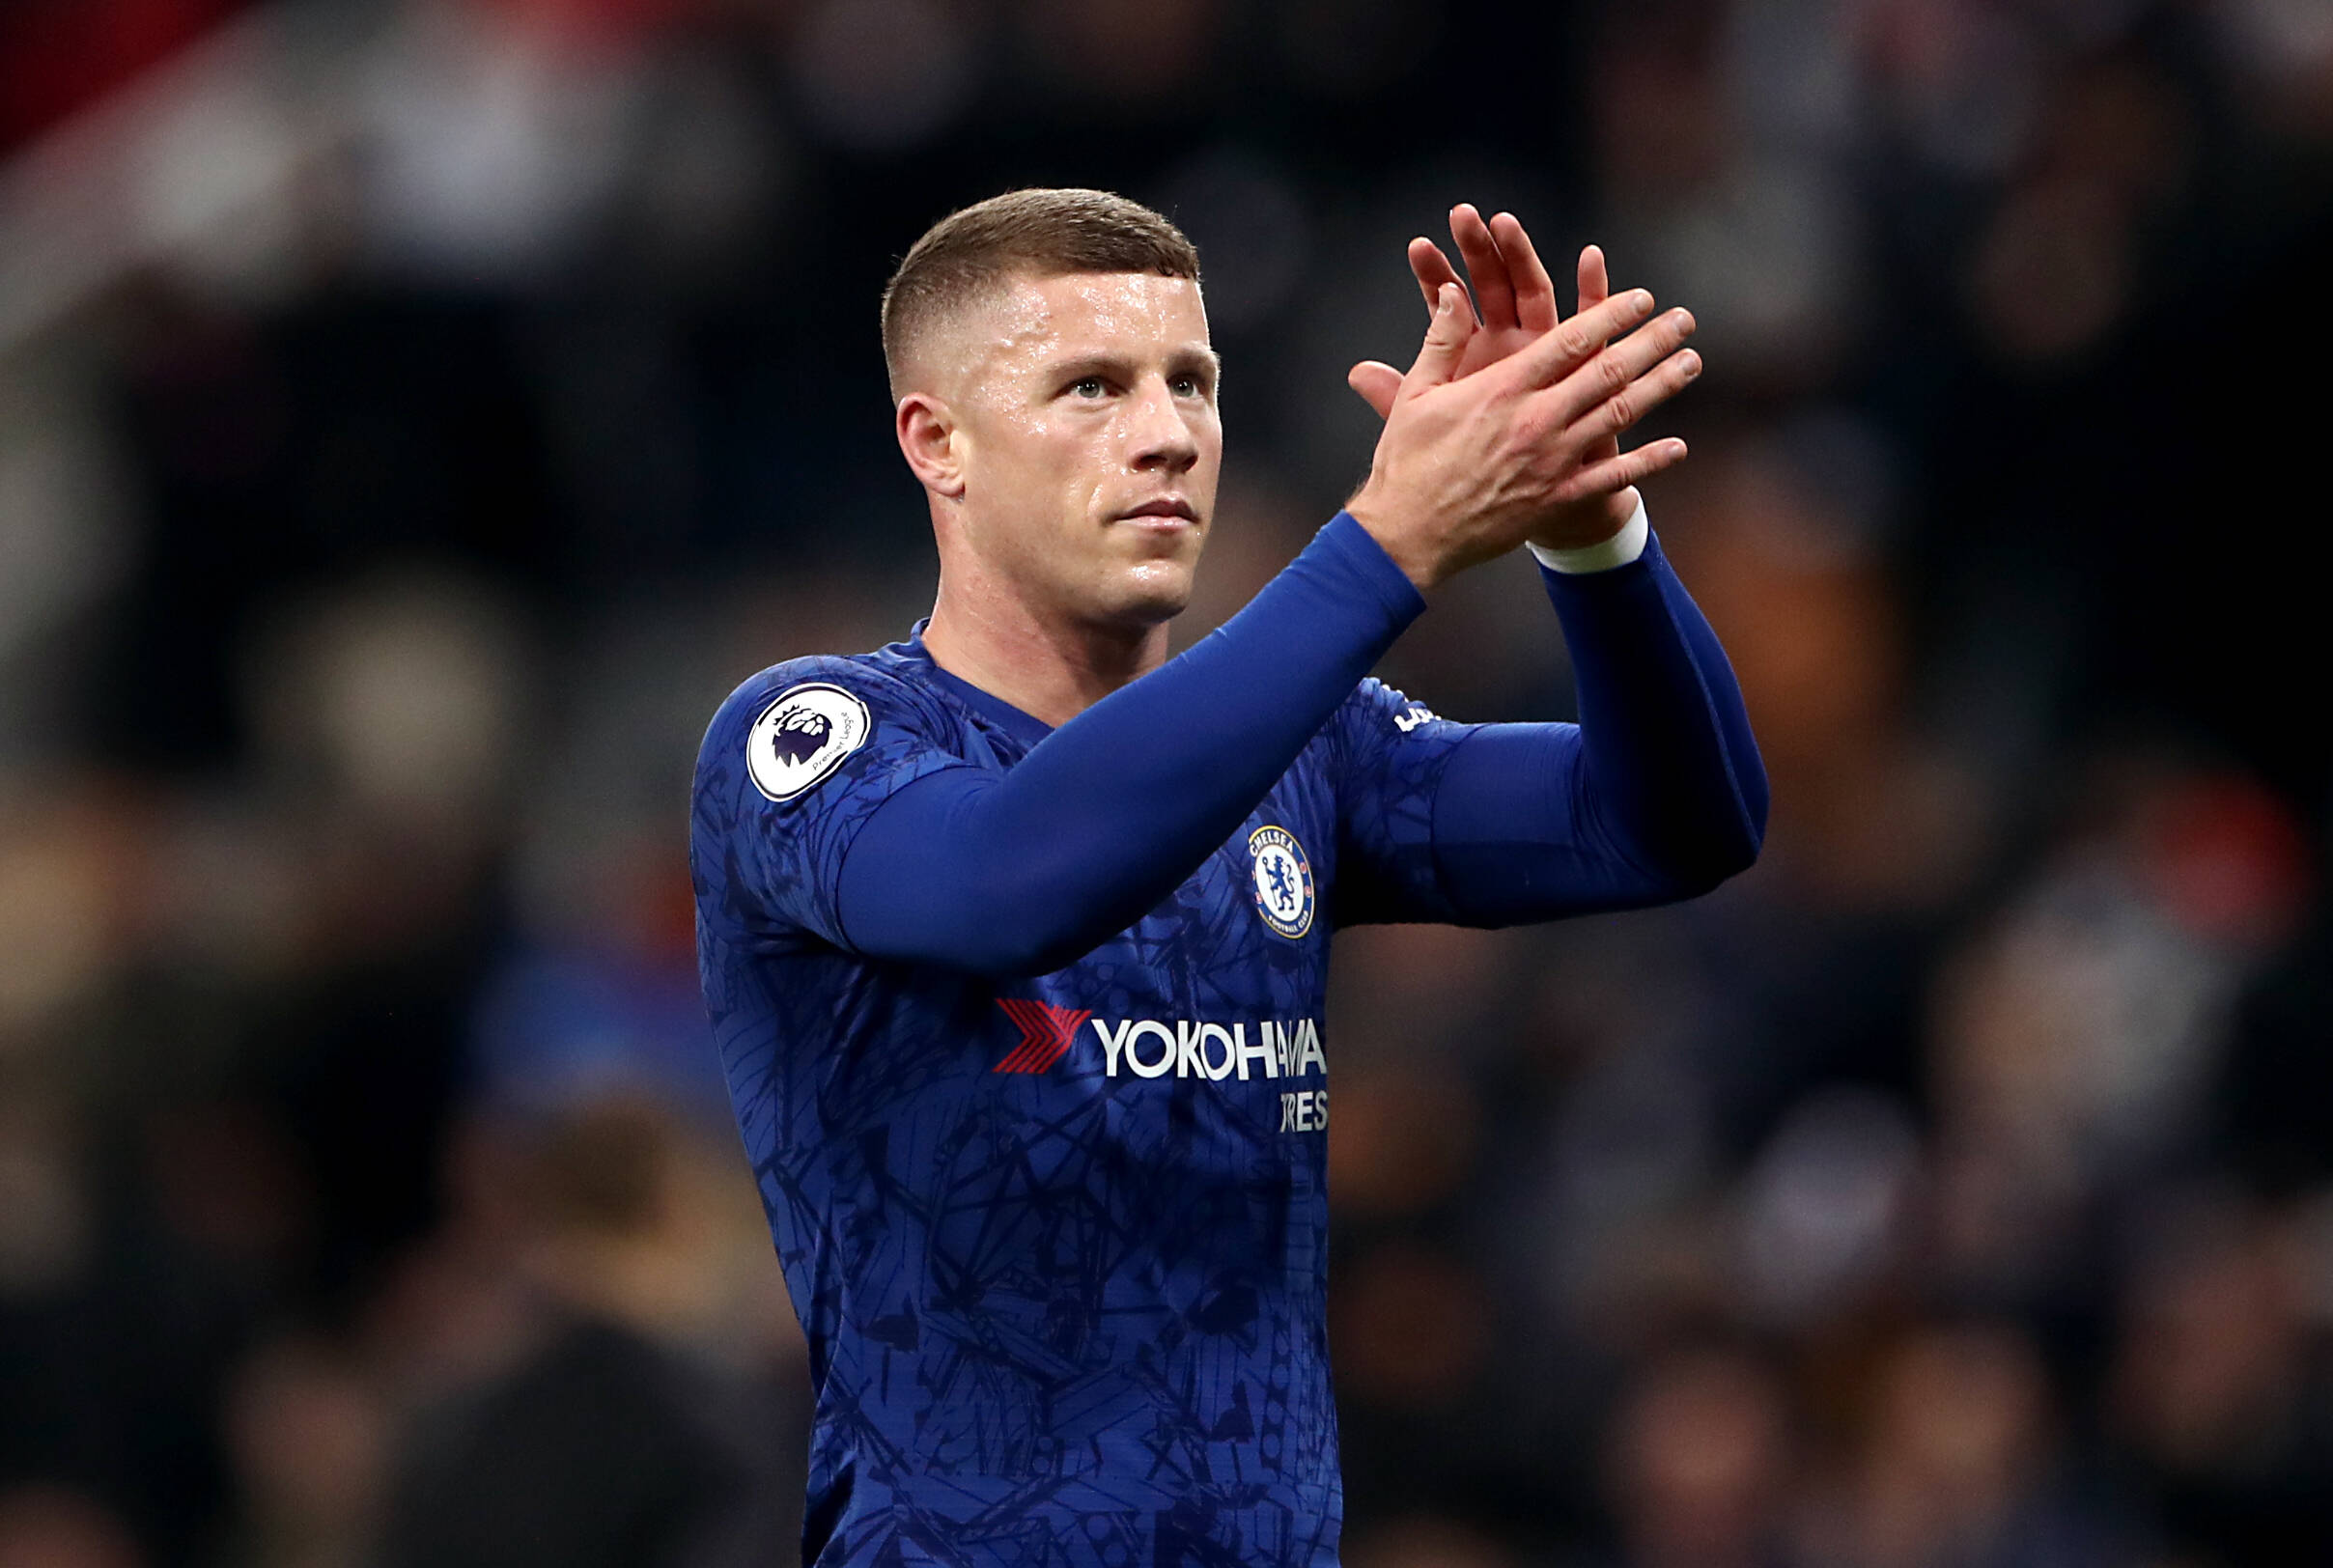 Chelsea midfielders, Ross Barkley (in picture) and Conor Gallagher are wanted by Newcastle United.